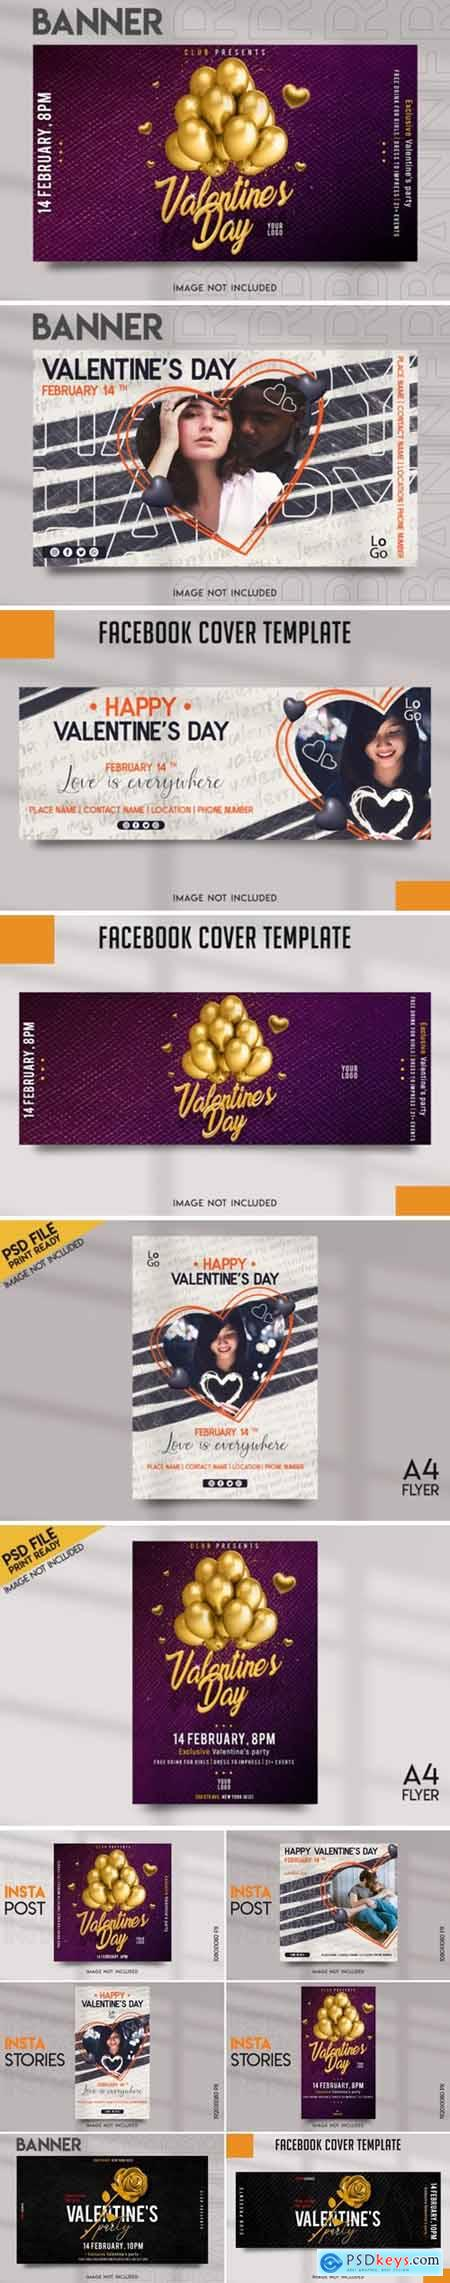 Valentines Day Social Media Template Pack